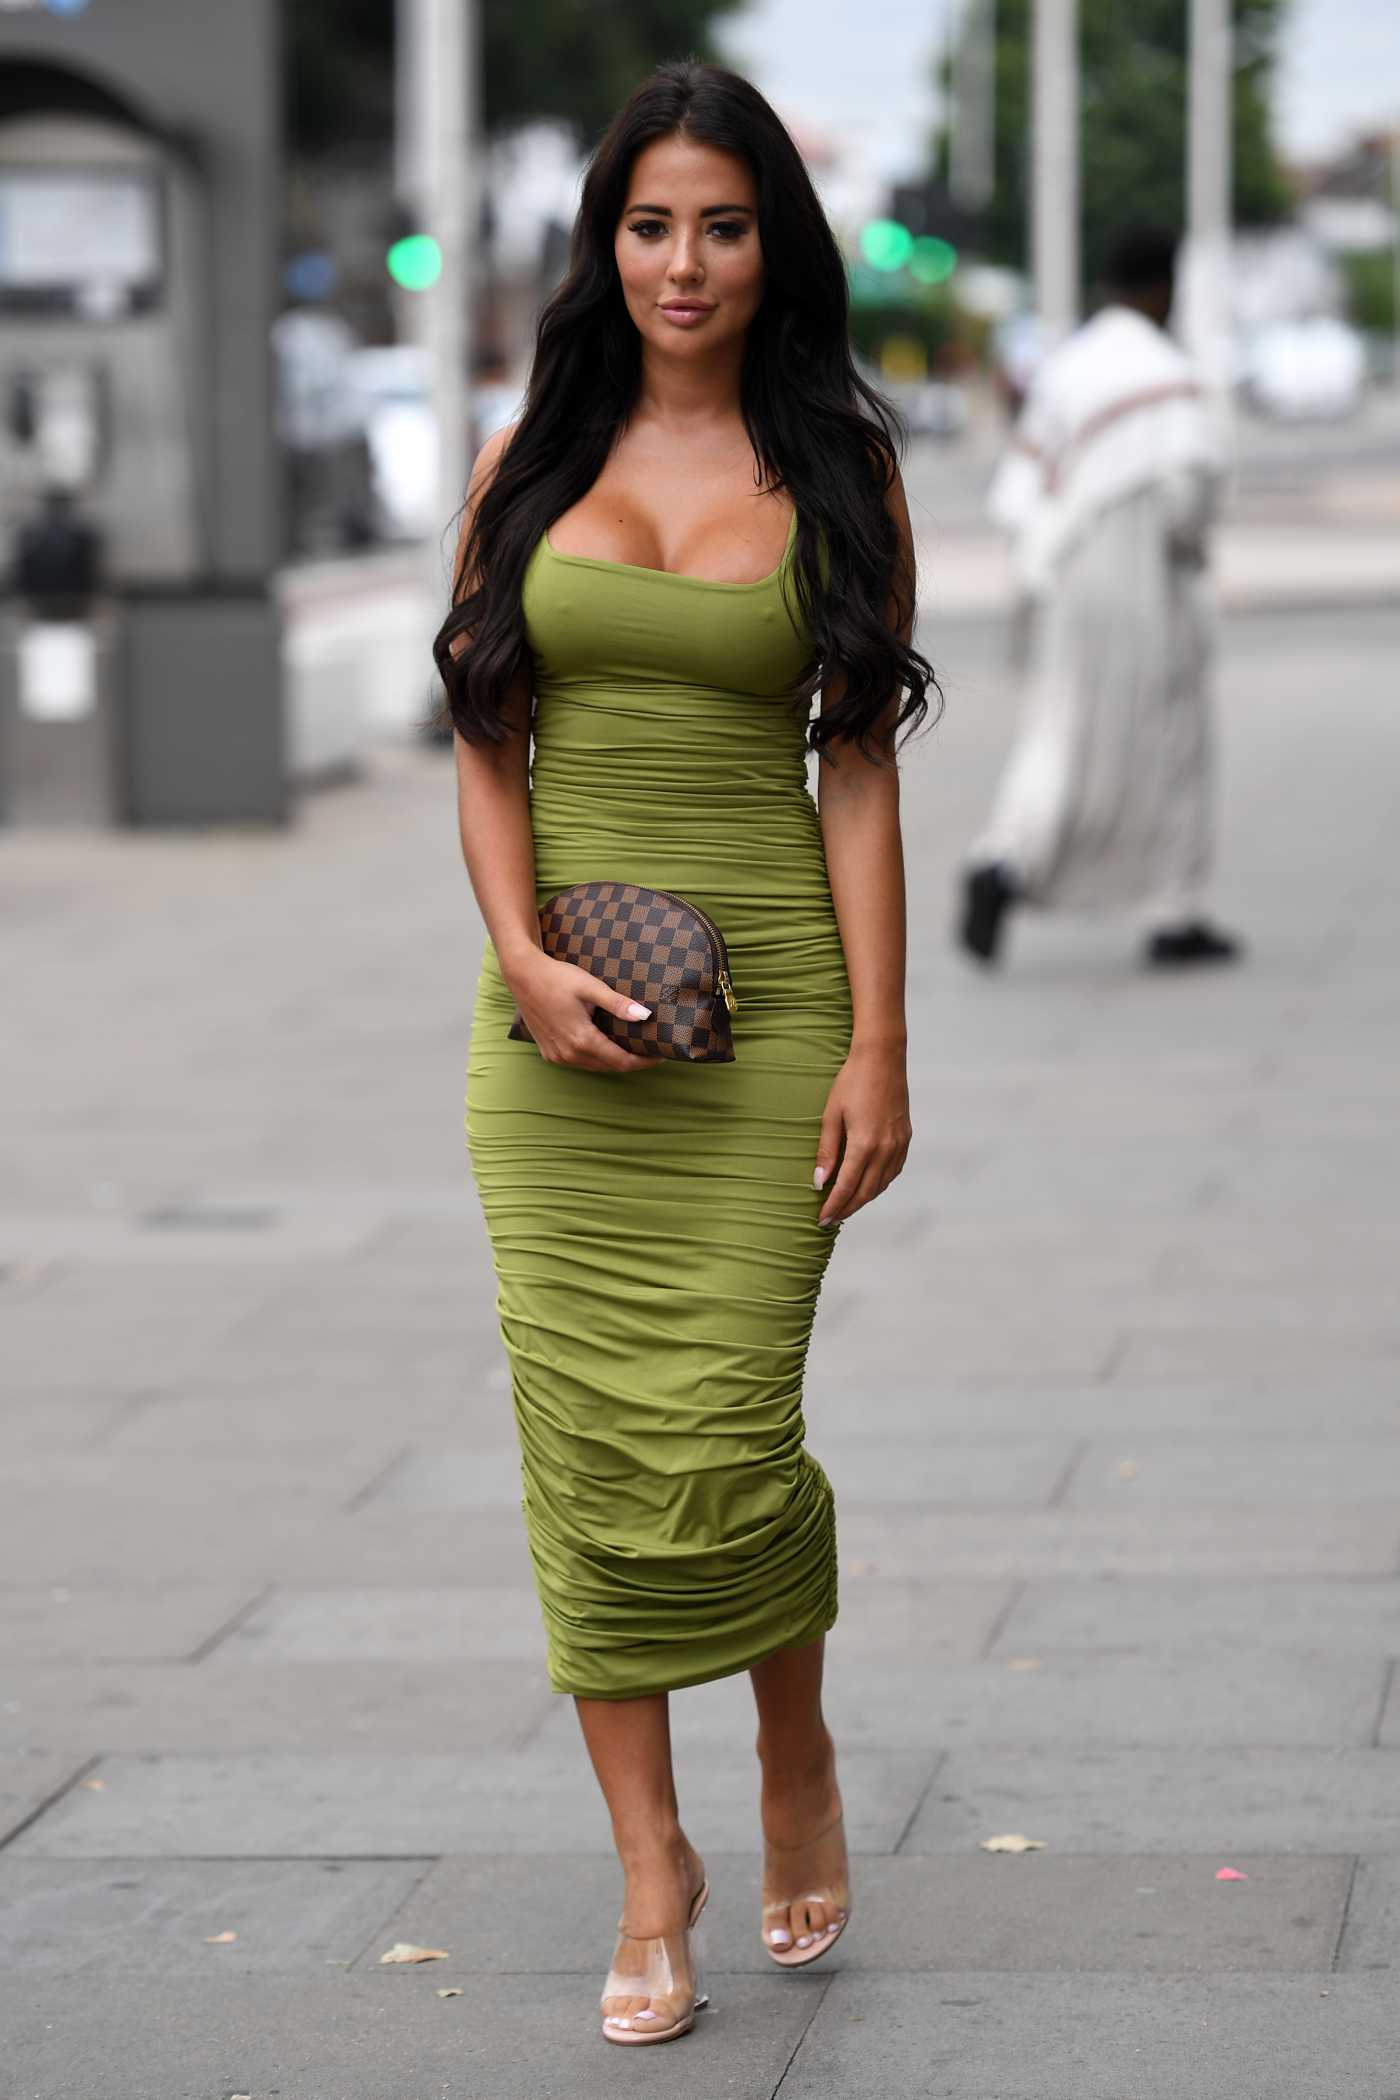 Yazmin Oukhellou in a Green Dress Was Seen Out in Essex 08/06/2020